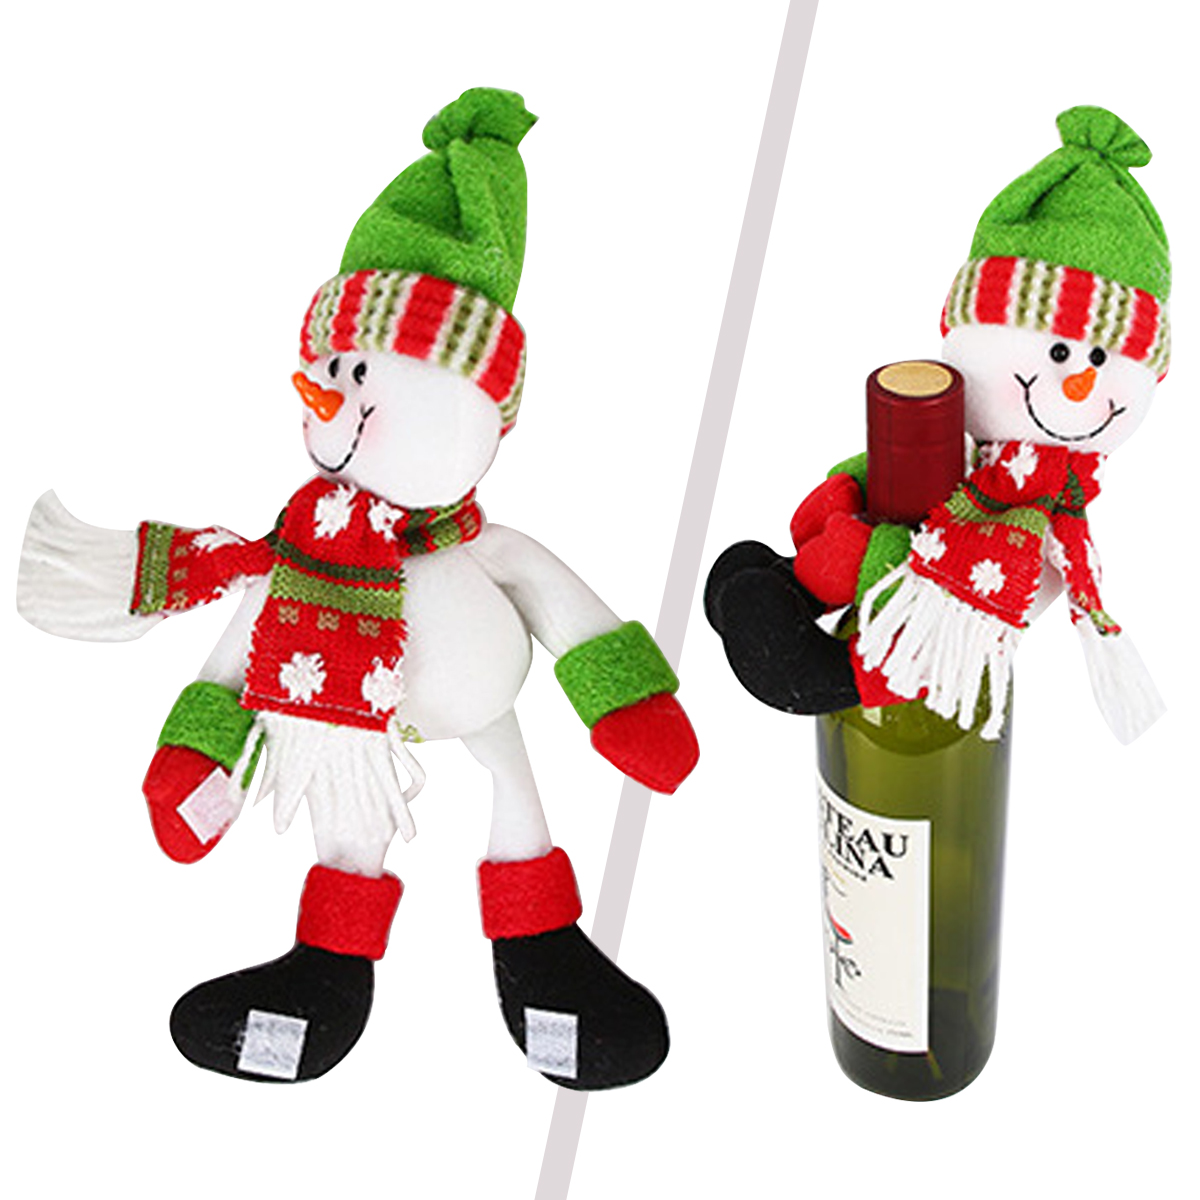 Home & Garden Snny New 1pcs Table Decorations Wine Bottle Cover Ornament Wedding Table Decorations Novelty Decoration Snowman Santa Clause L